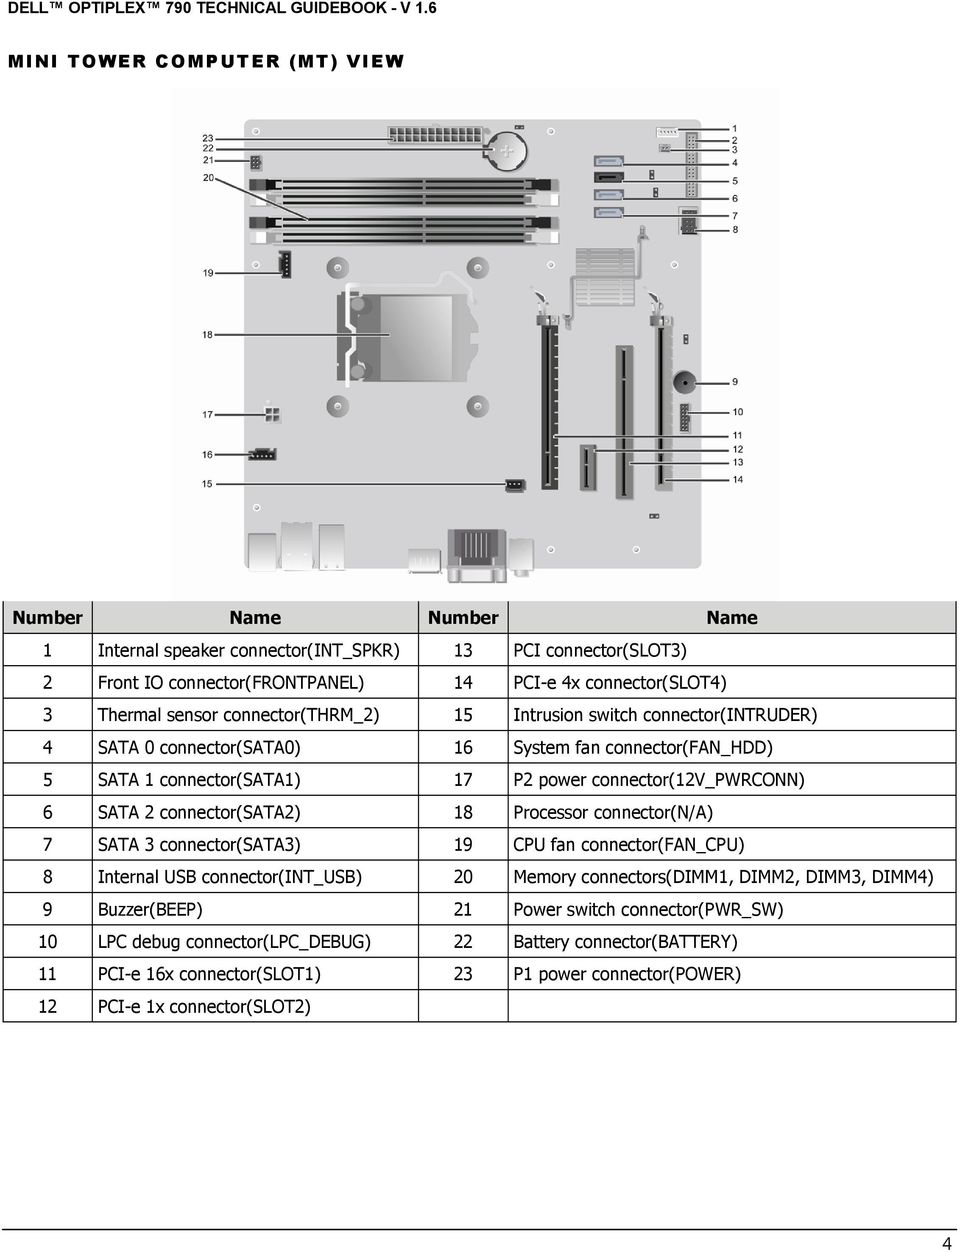 Modern Dell Atx Power Supply Pinout Frieze - Electrical and Wiring ...